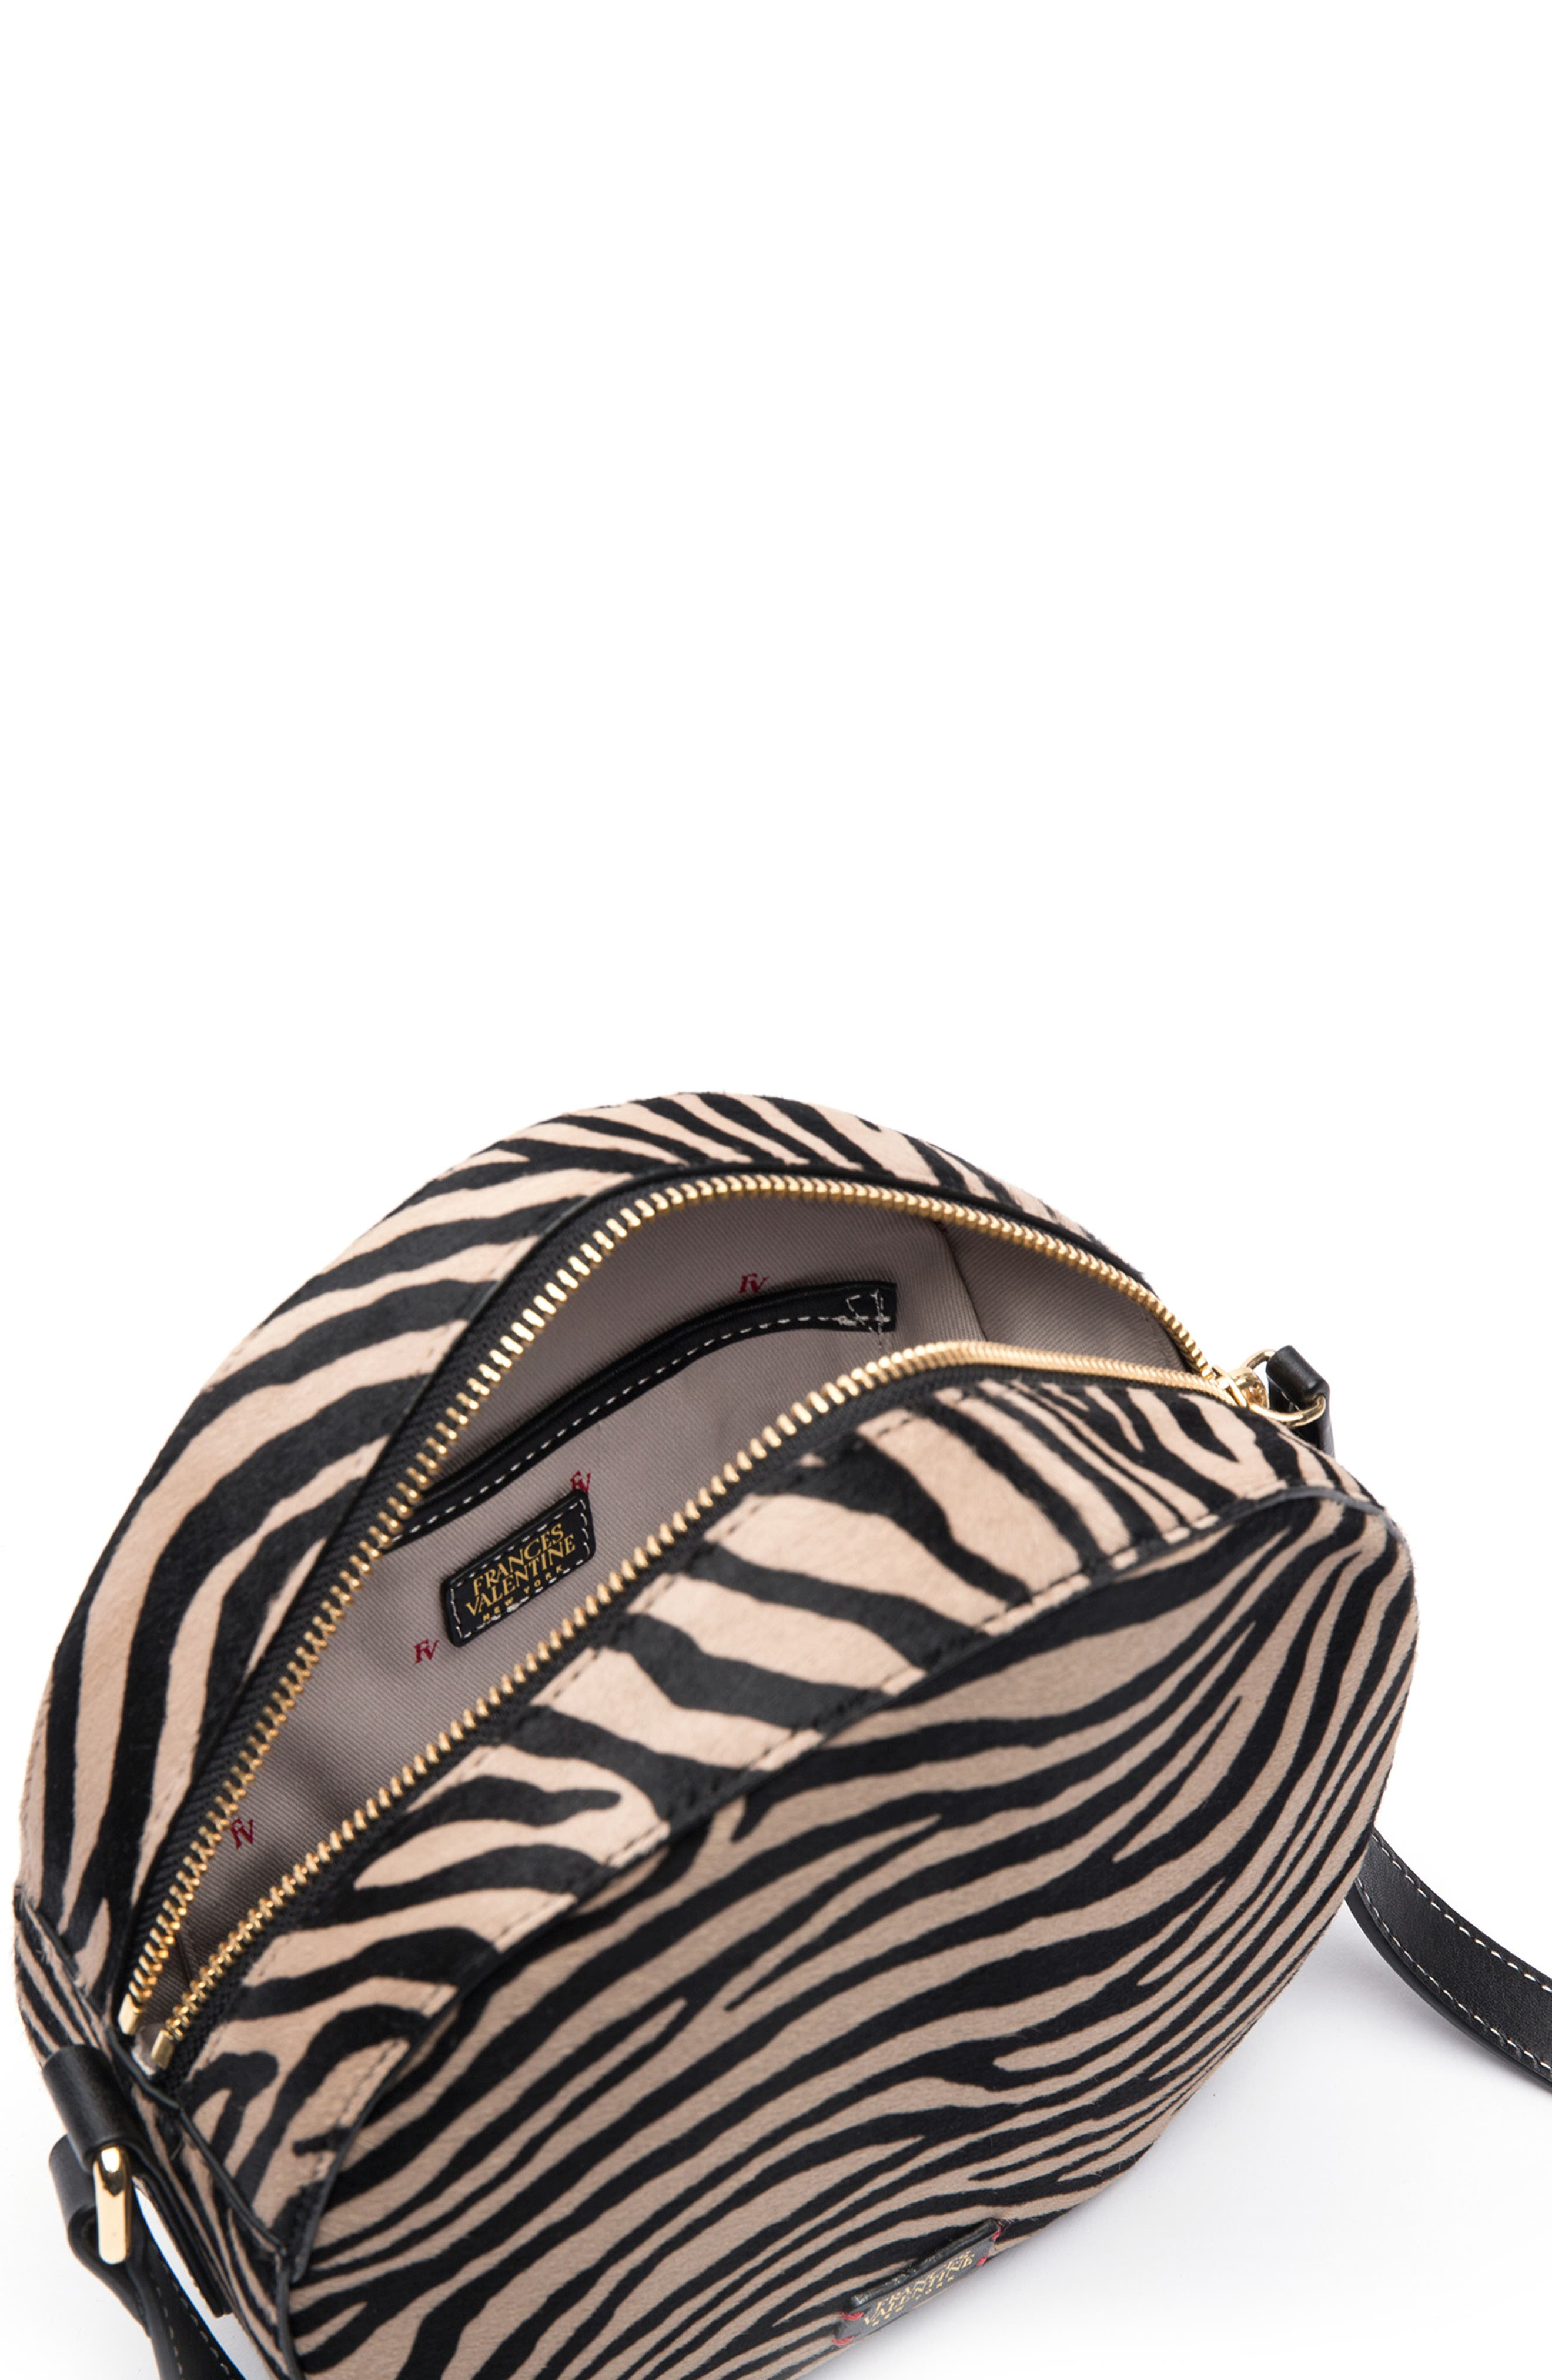 Frances Valetine Lulu Genuine Calf Hair Round Crossbody Bag,                             Alternate thumbnail 2, color,                             ZEBRA